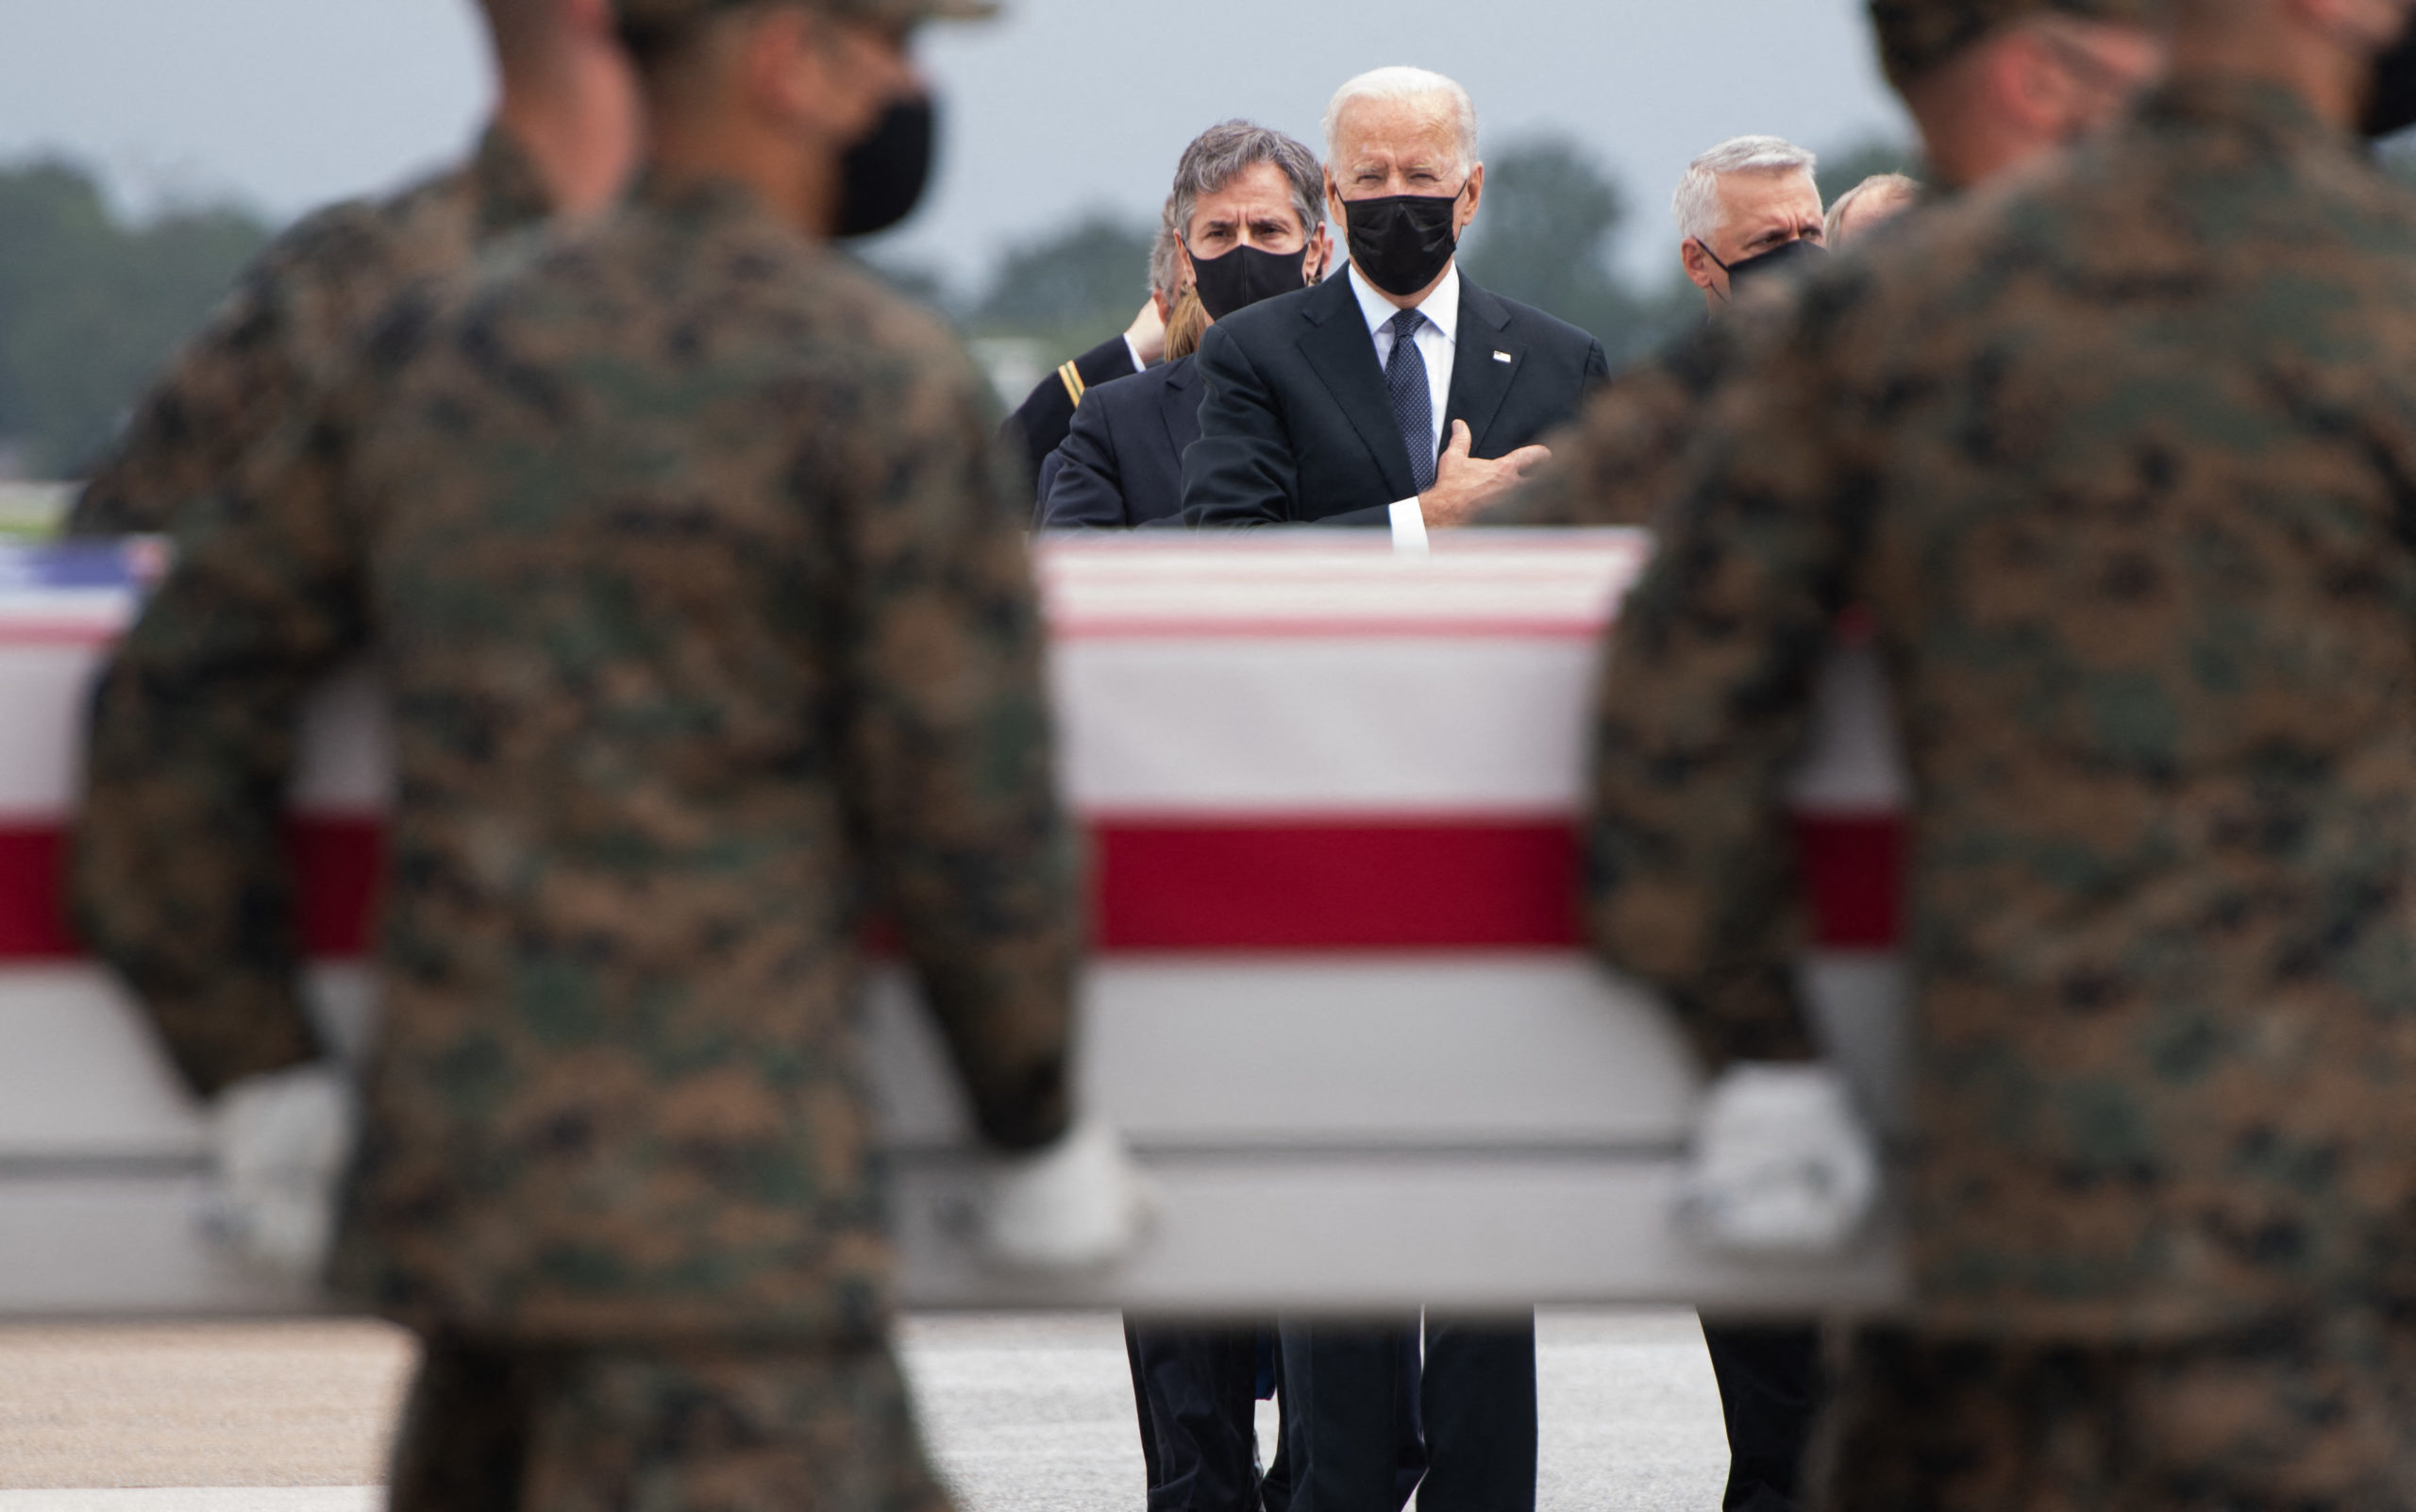 TOPSHOT - US President Joe Biden(C) attends the dignified transfer of the remains of fallen service members at Dover Air Force Base in Dover, Delaware, August, 29, 2021, after 13 members of the US military were killed in Afghanistan last week. - President Joe Biden prepared Sunday at a US military base to receive the remains of the 13 American service members killed in an attack in Kabul, a solemn ritual that comes amid fierce criticism of his handling of the Afghanistan crisis. Biden and his wife, Jill, both wearing black and with black face masks, first met far from the cameras with relatives of the dead in a special family center at Dover Air Force Base in Delaware.The base, on the US East Coast about two hours from Washington, is synonymous with the painful return of service members who have fallen in combat. (Photo by SAUL LOEB / AFP) (Photo by SAUL LOEB/AFP via Getty Images)